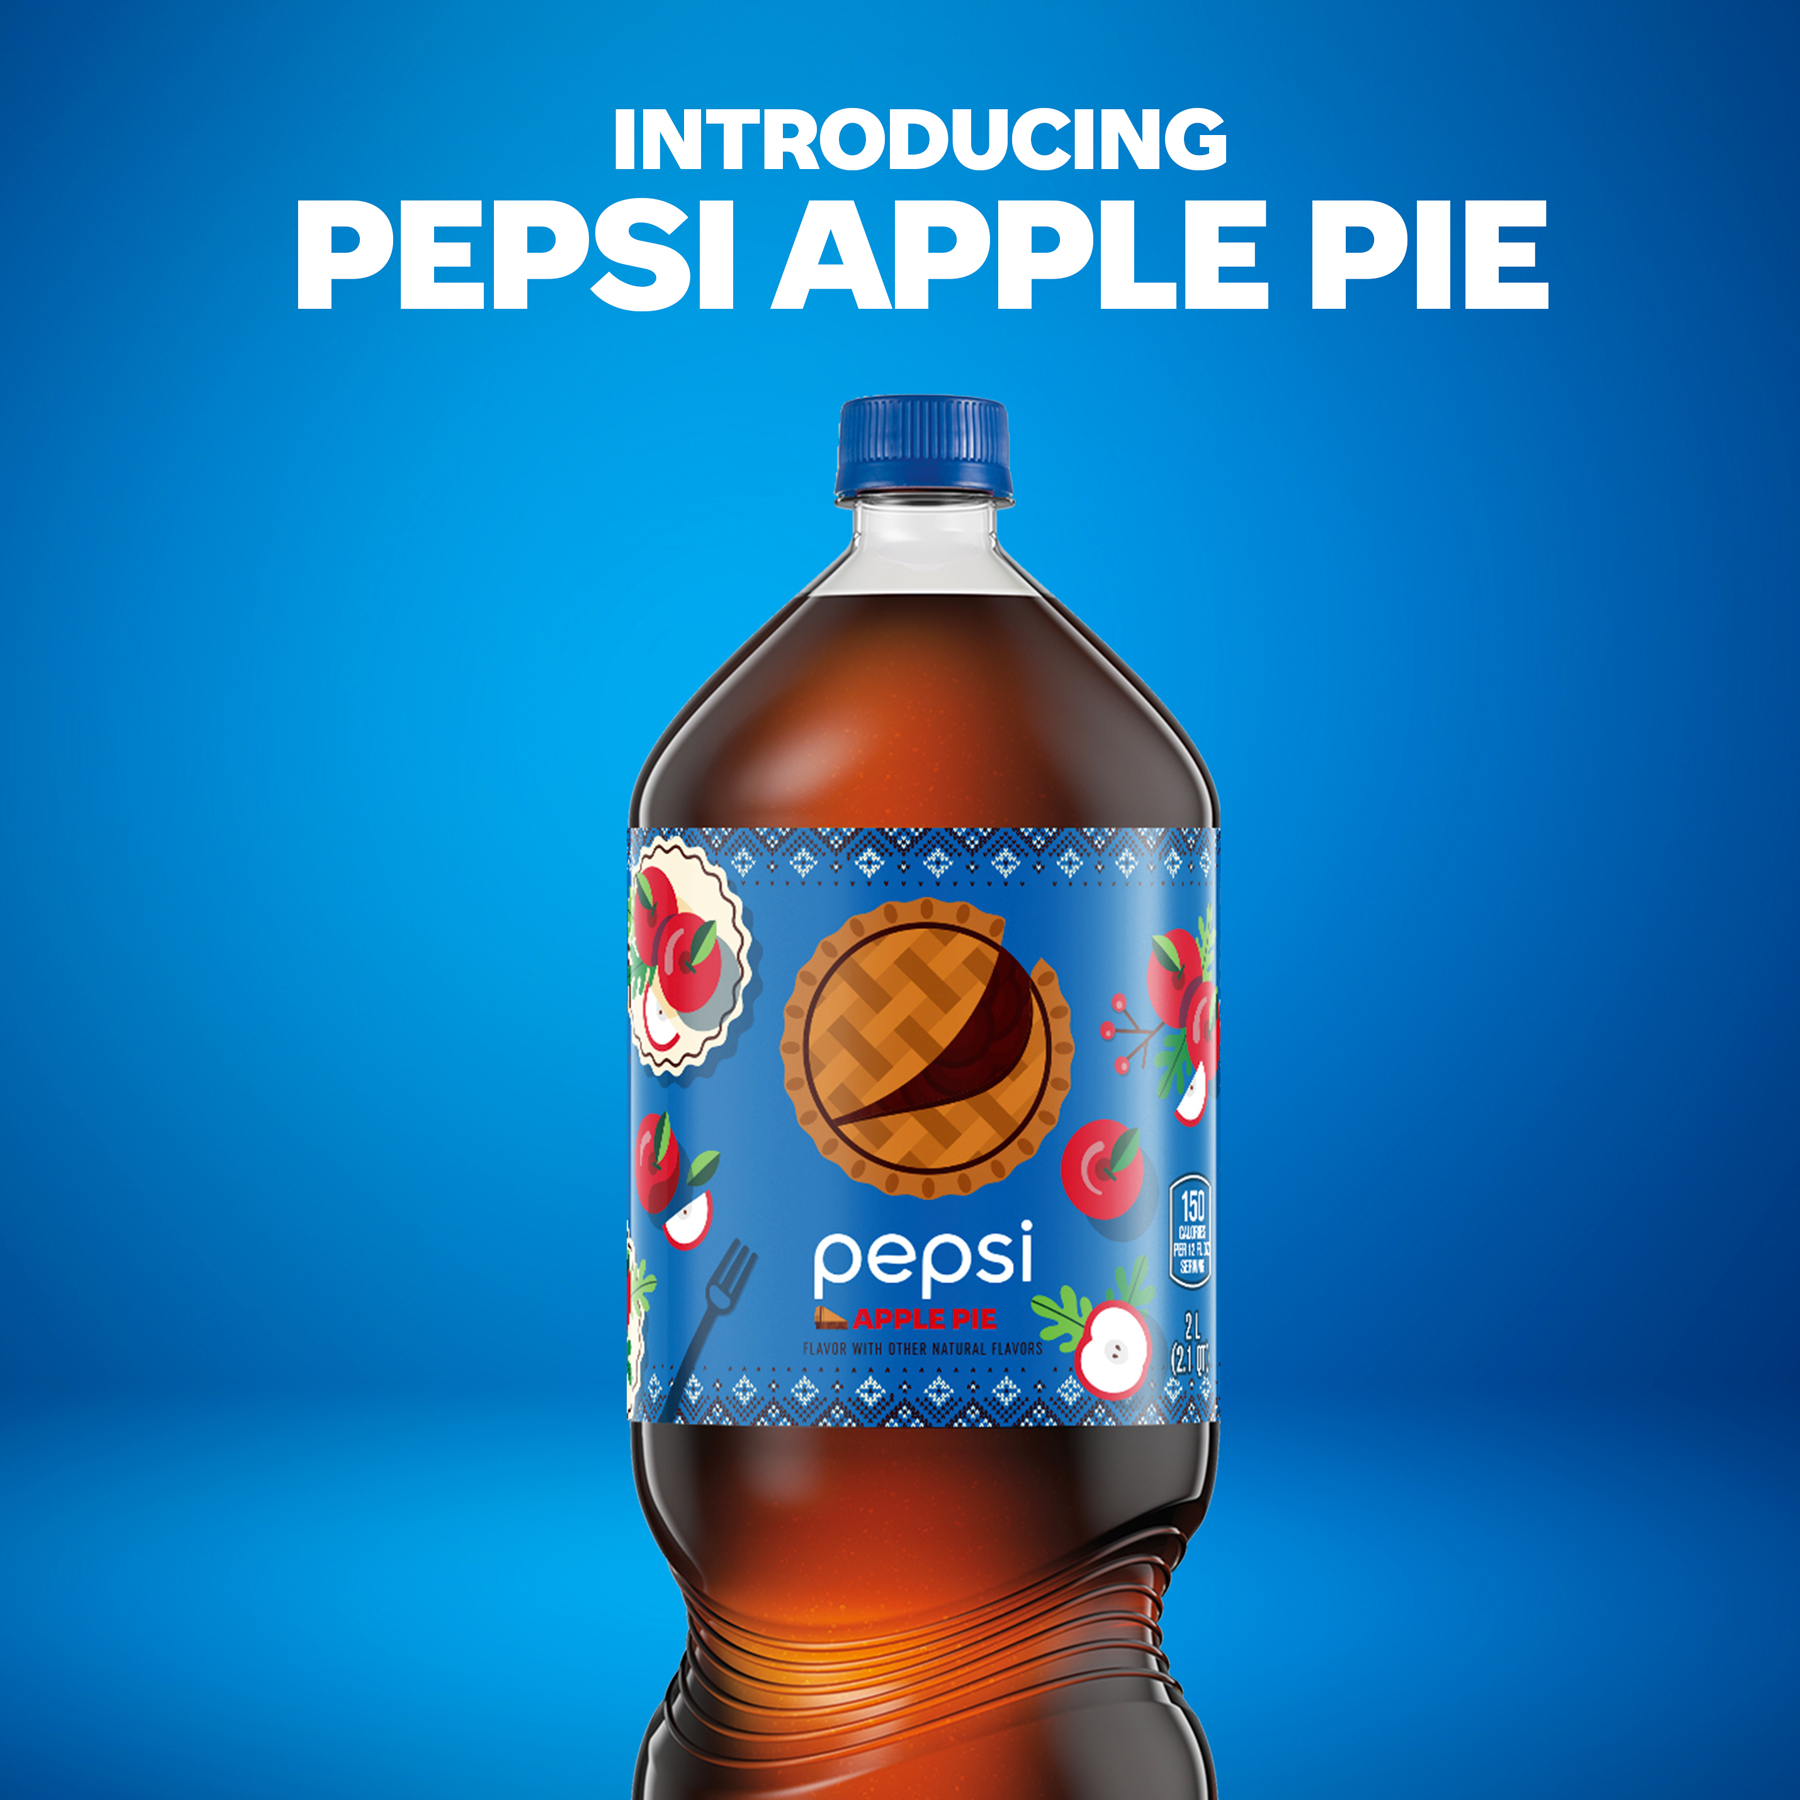 Pepsi Apple Pie